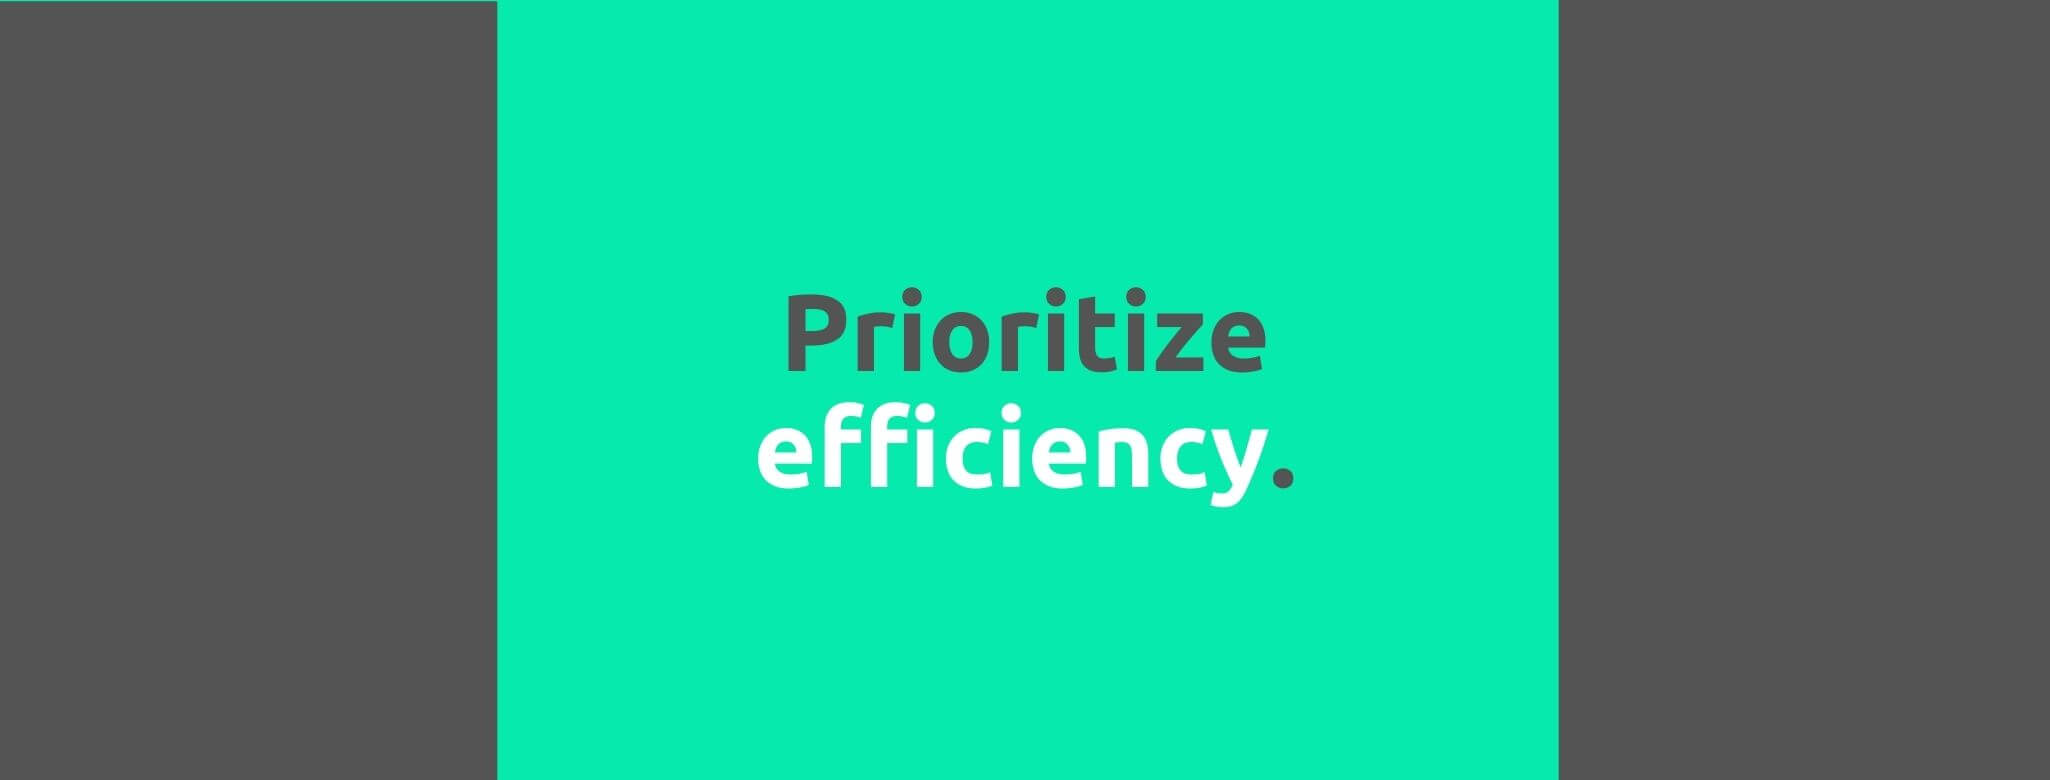 Prioritize efficiency - Customer Expectations - Replyco Helpdesk Software for eCommerce